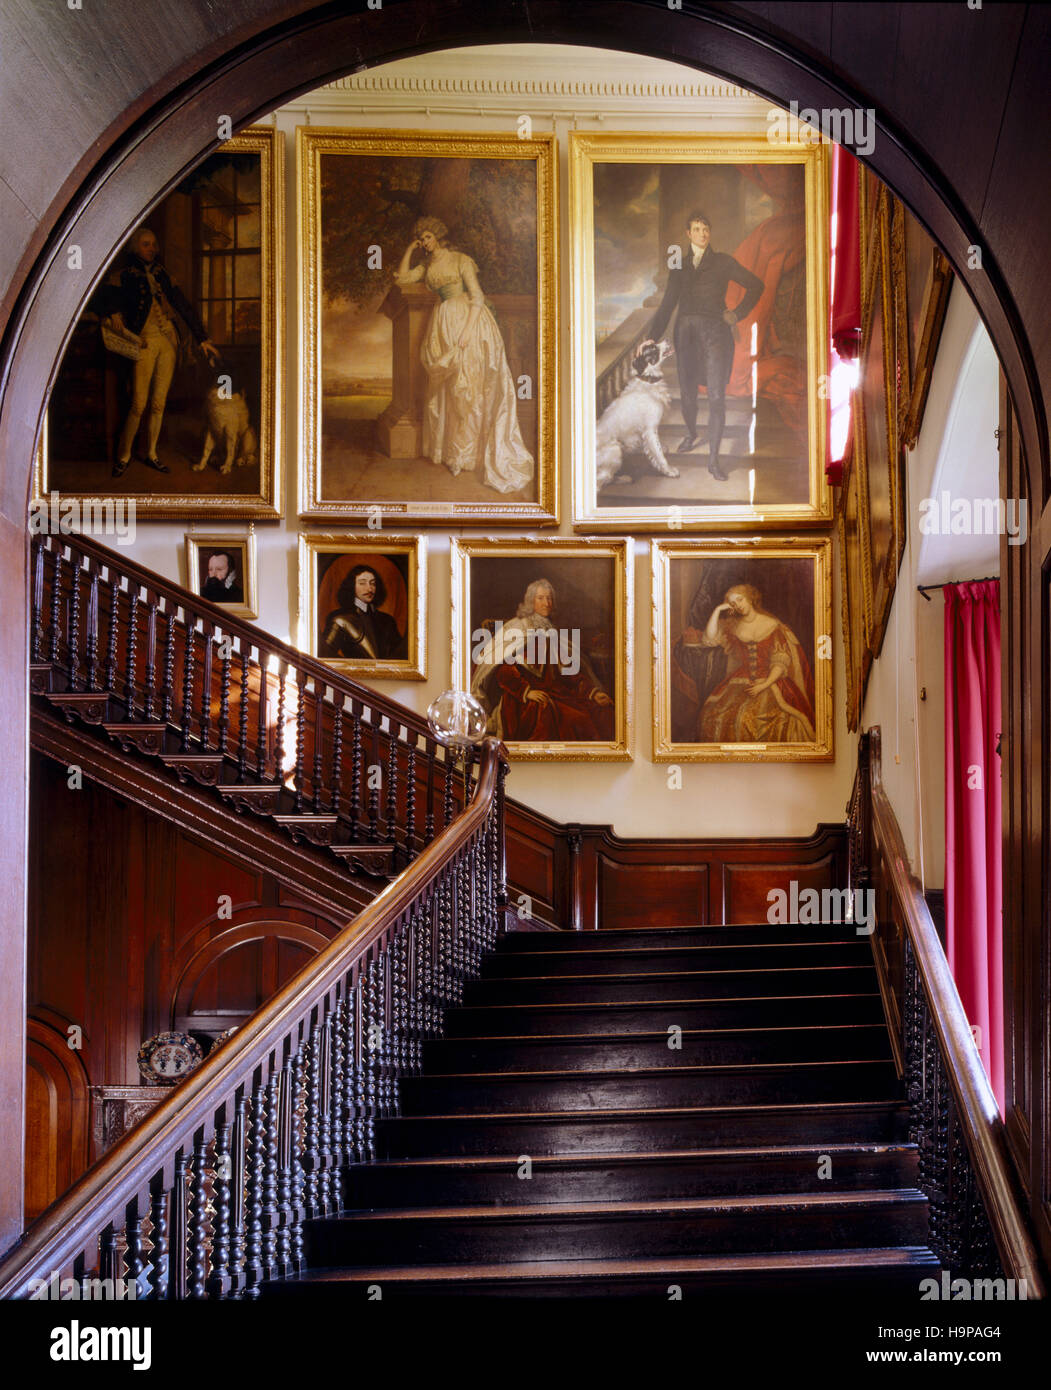 Entrance Hall at Antony House showing the staircase with portraits , oak banisters, and arch. - Stock Image